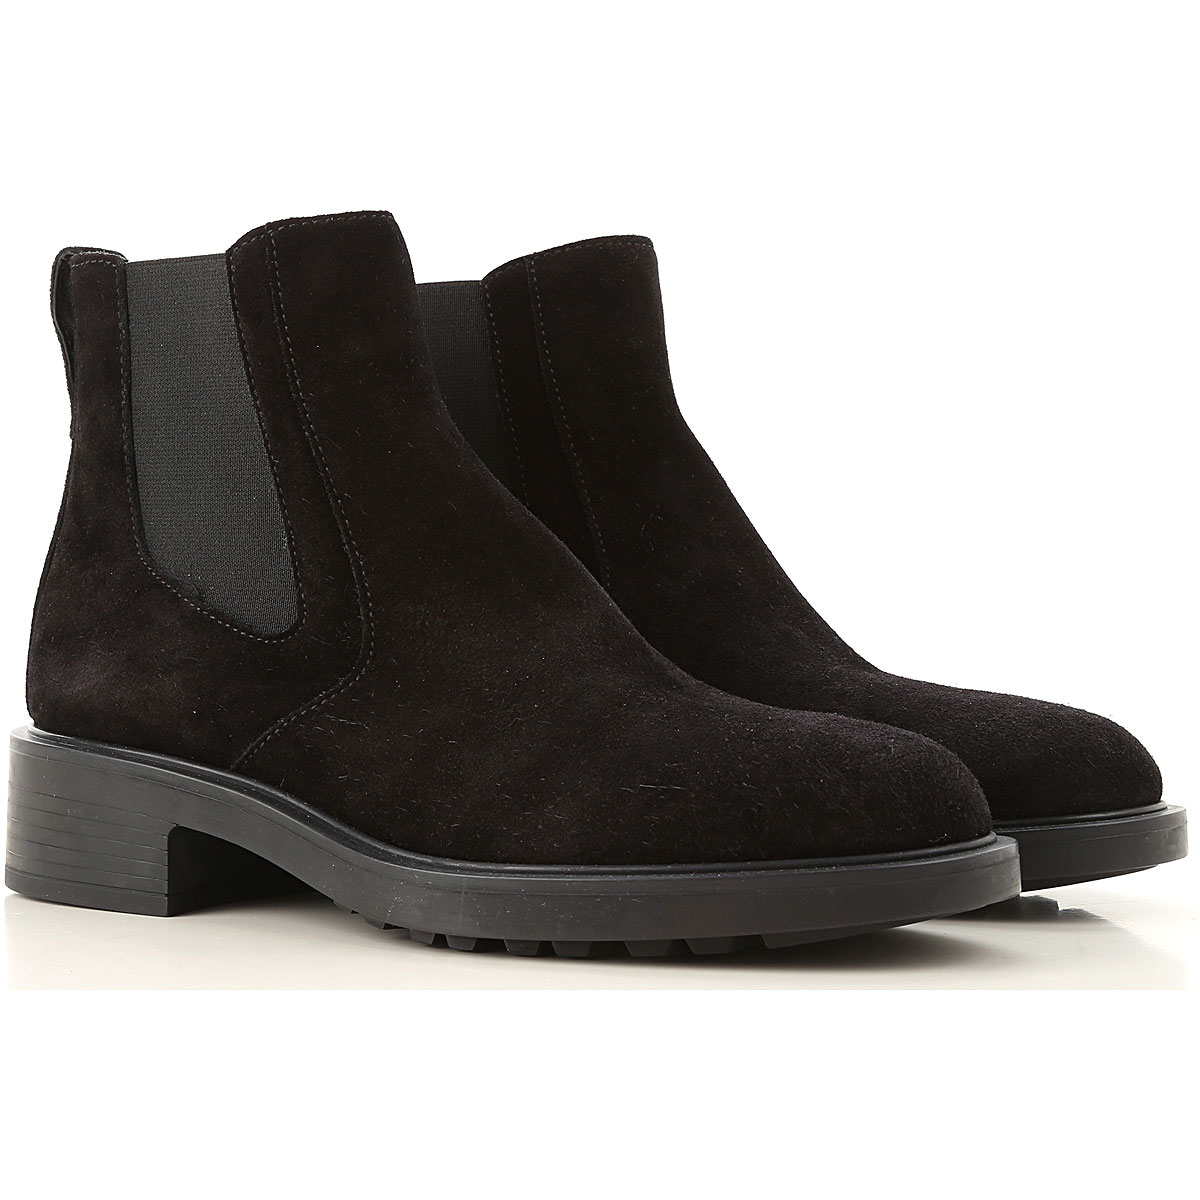 Hogan Boots for Women, Booties On Sale, Black, Suede leather, 2019, 10 8 8.5